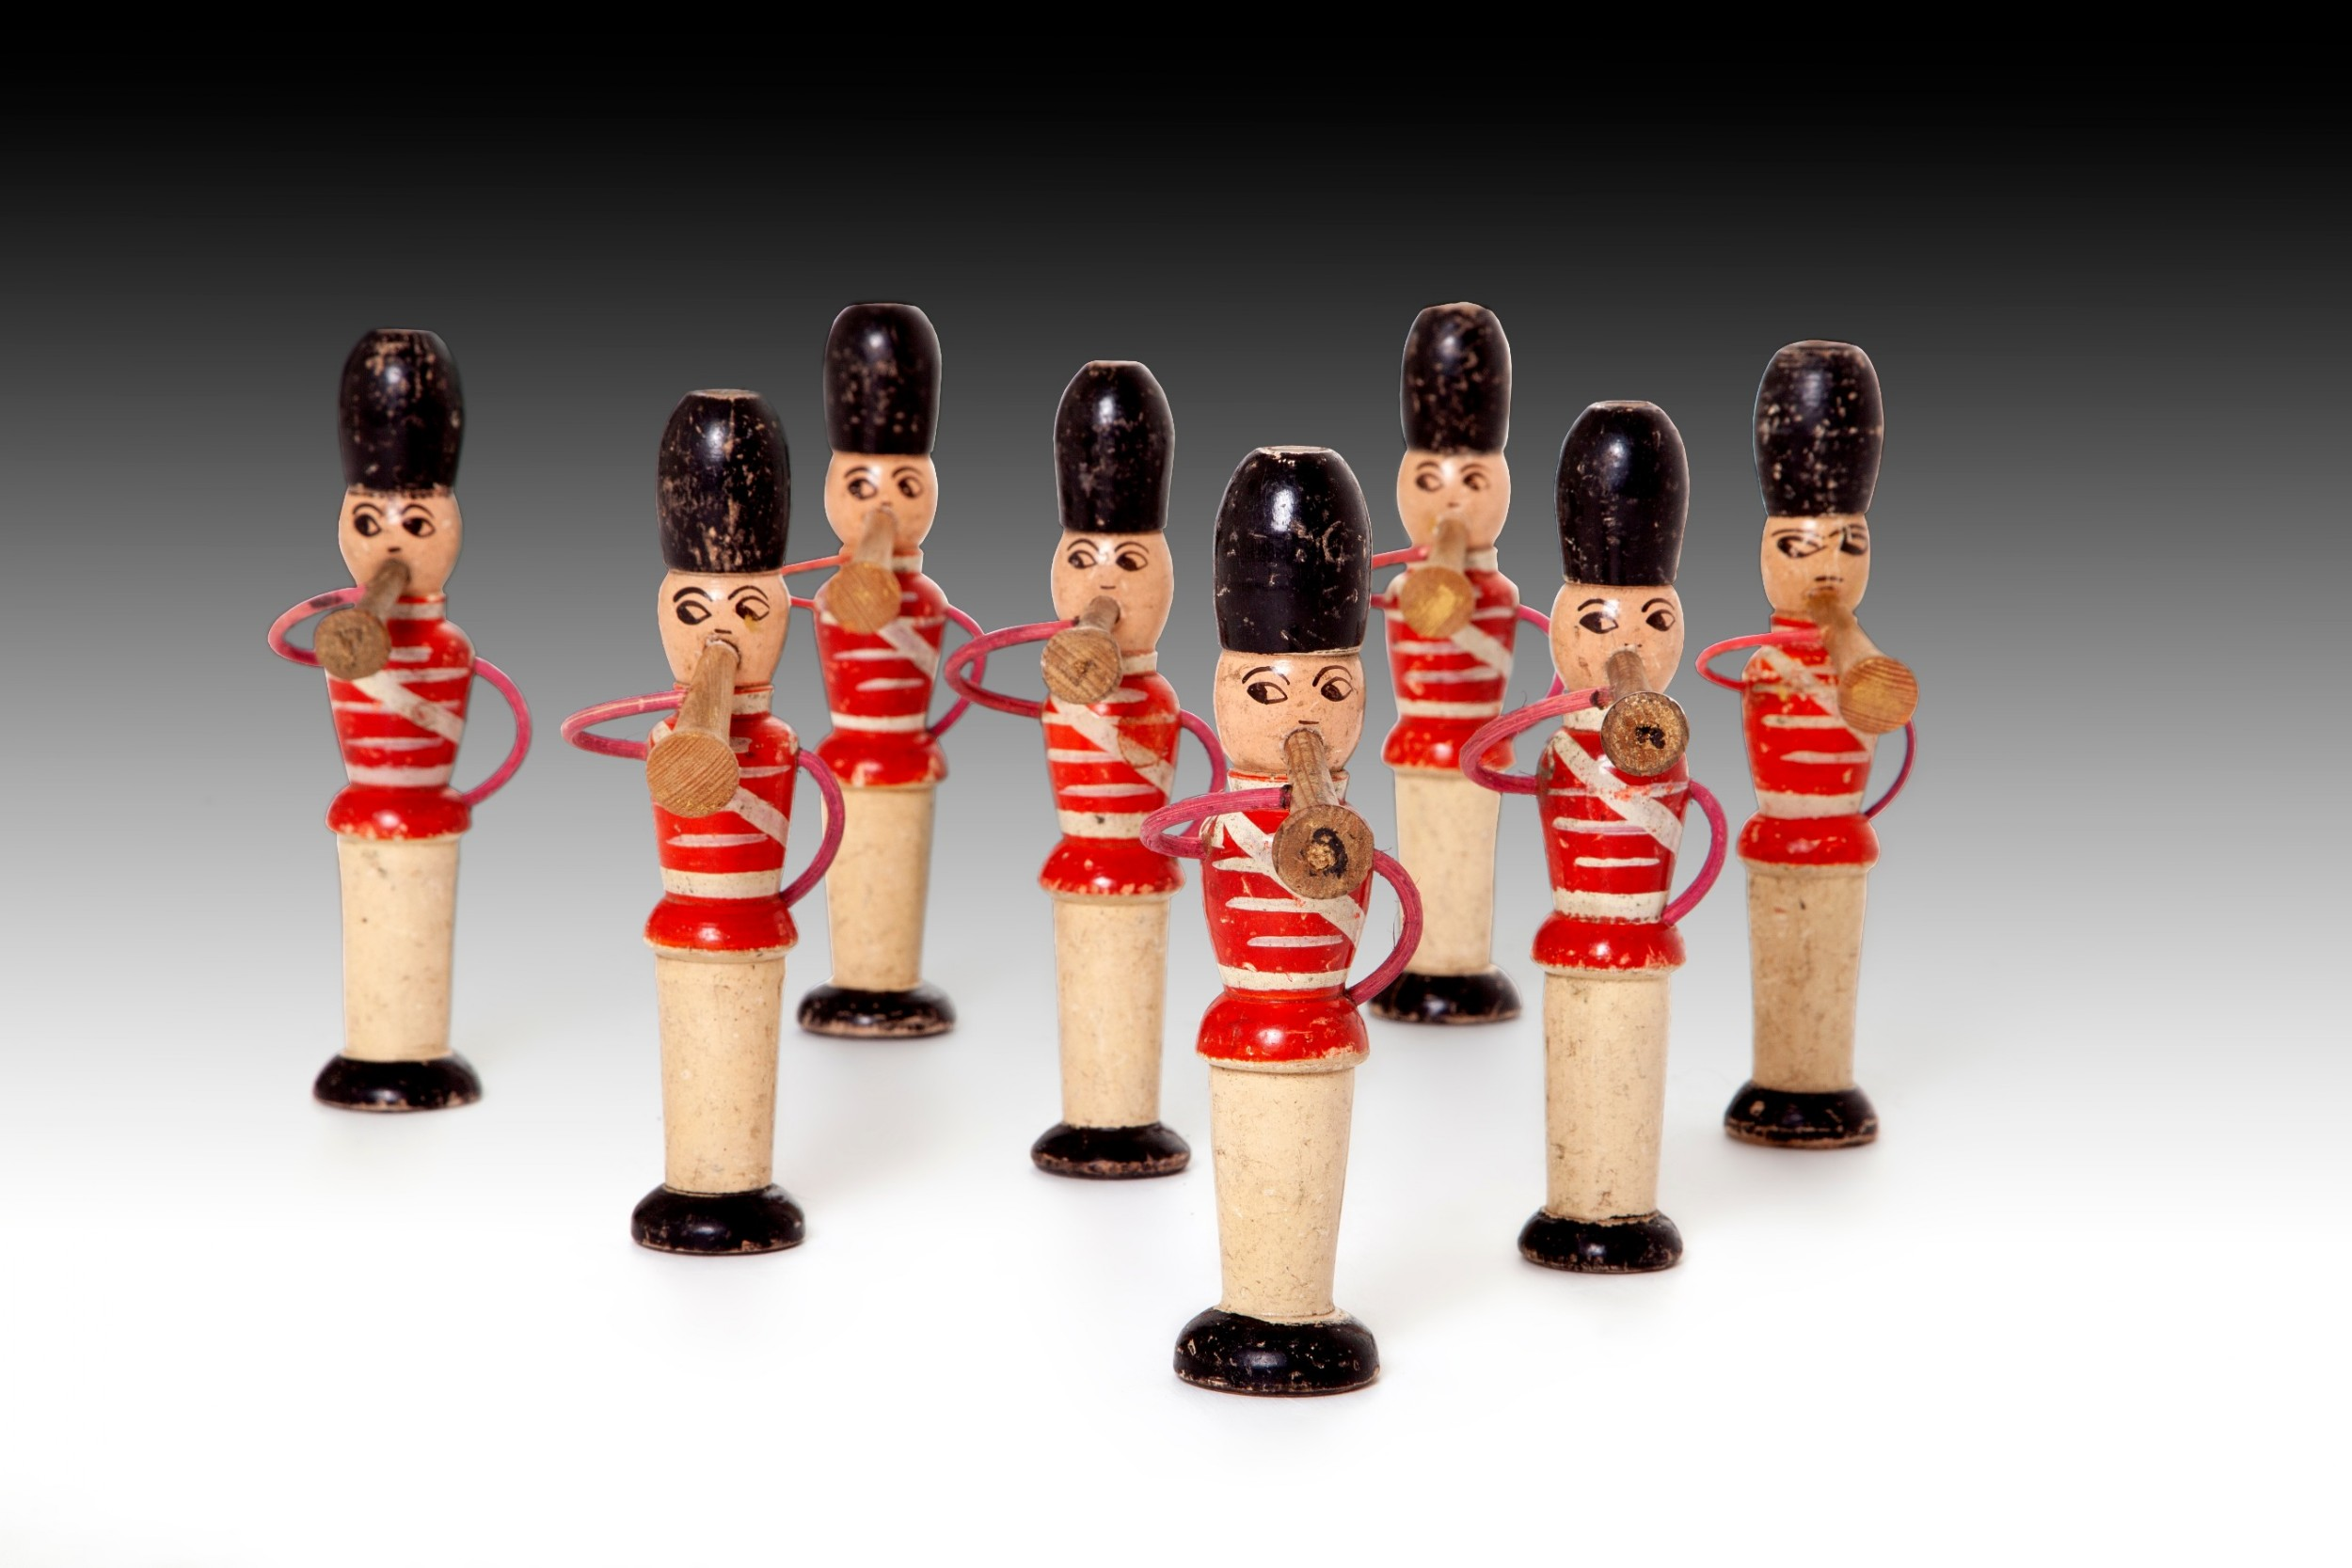 an extremely rare and charming group of musical toy soldiers